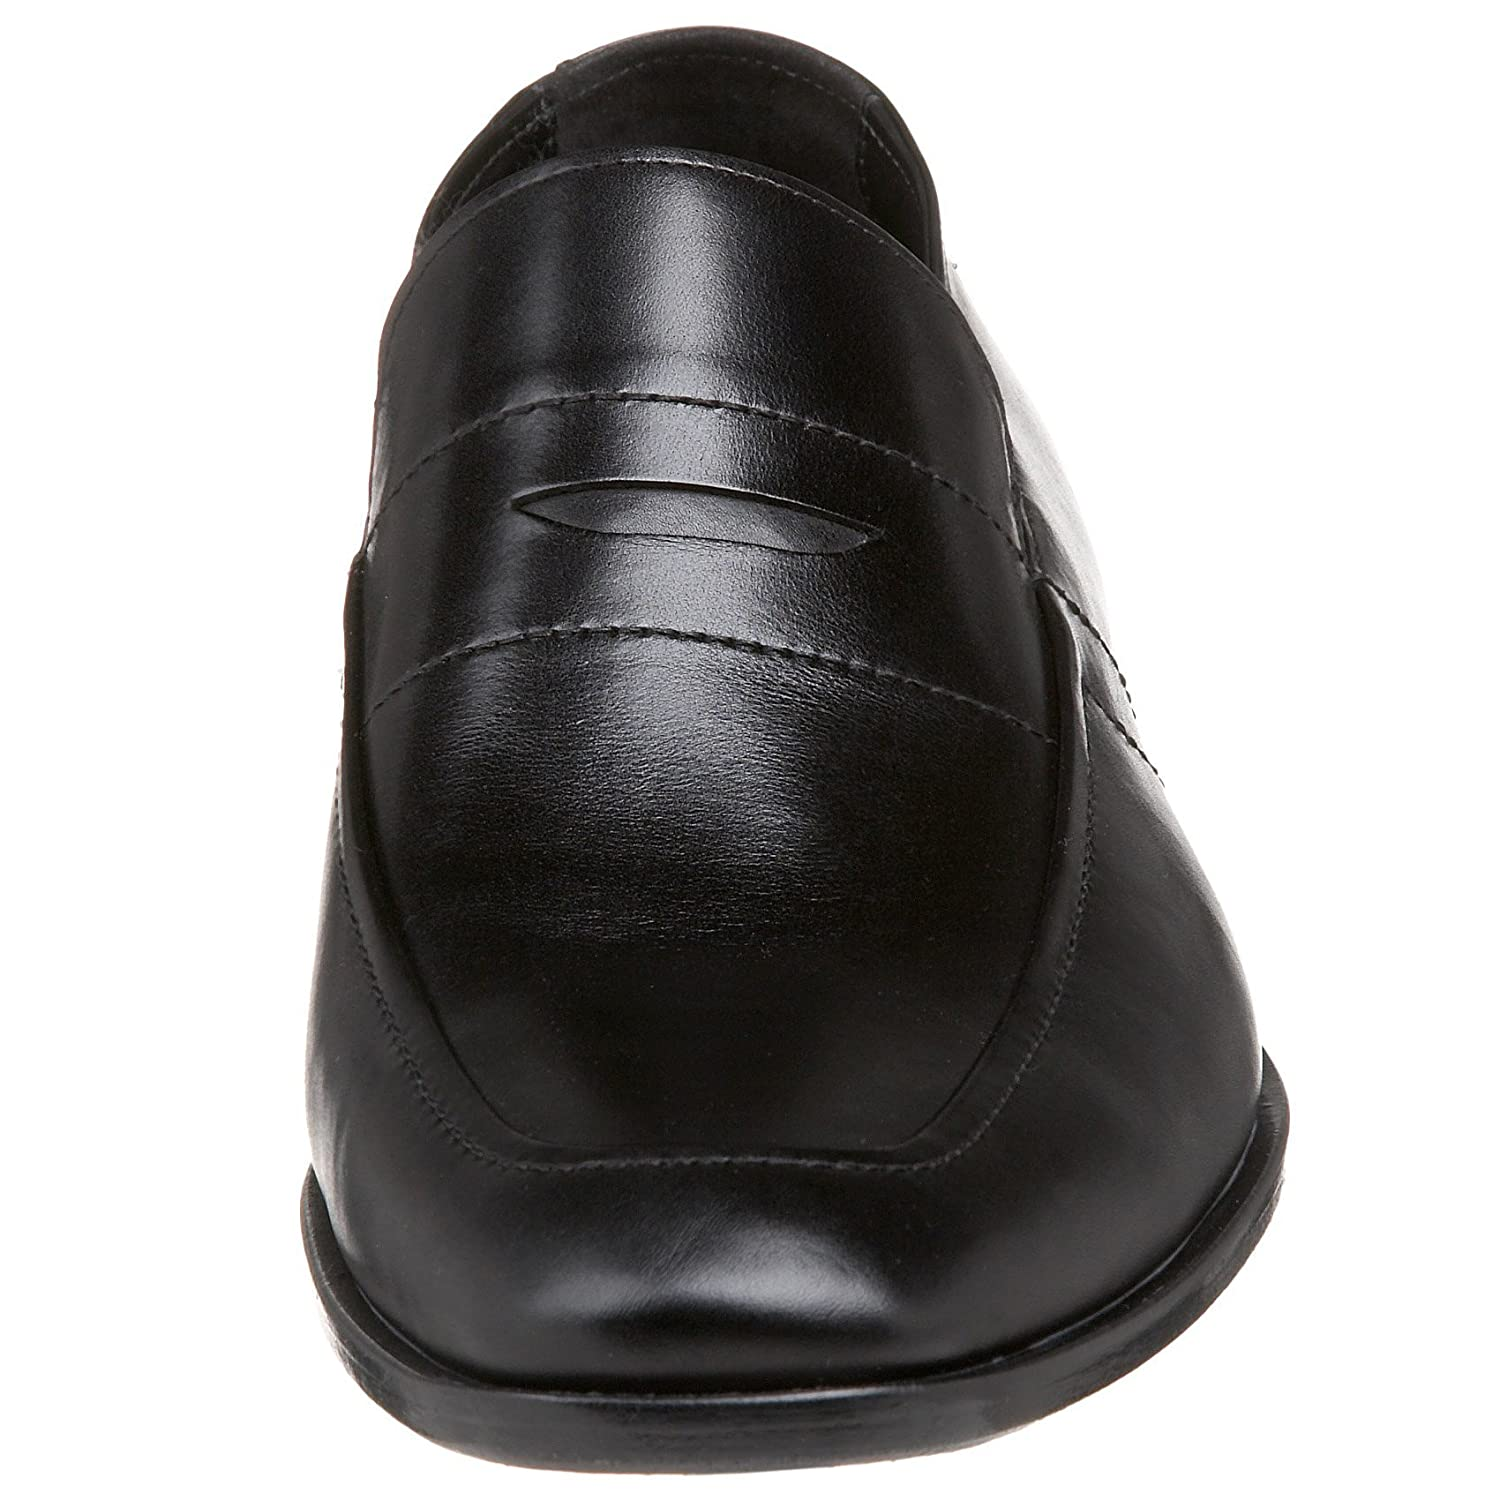 1602806ed56 Amazon.com  BOSS Black by Hugo Boss Men s Cile Stitched-On Penny Loafer